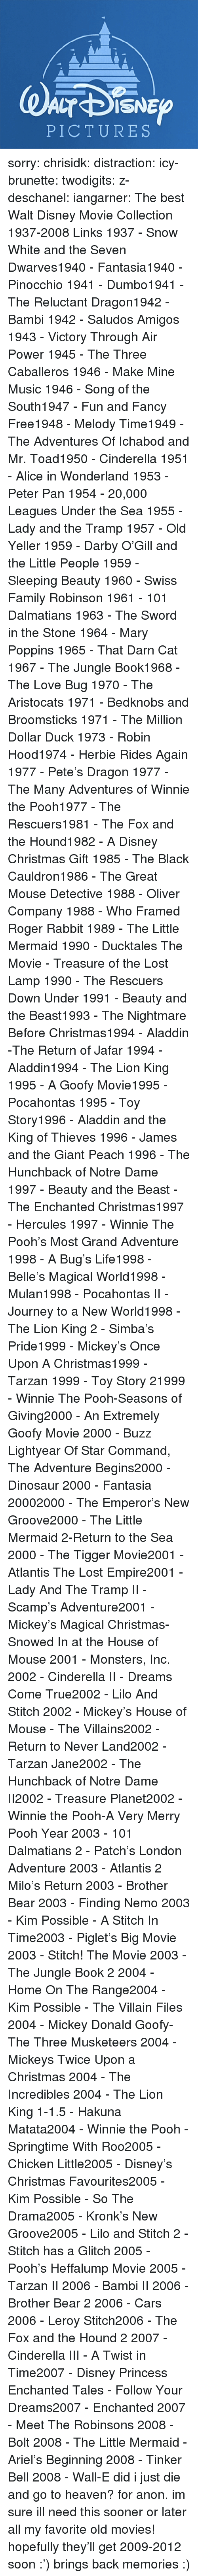 New Groove: PICTURES sorry:  chrisidk:  distraction:   icy-brunette:   twodigits:   z-deschanel:   iangarner:   The best Walt Disney Movie Collection 1937-2008 Links     1937 - Snow White and the Seven Dwarves1940 - Fantasia1940 - Pinocchio 1941 - Dumbo1941 - The Reluctant Dragon1942 - Bambi 1942 - Saludos Amigos 1943 - Victory Through Air Power 1945 - The Three Caballeros 1946 - Make Mine Music 1946 - Song of the South1947 - Fun and Fancy Free1948 - Melody Time1949 - The Adventures Of Ichabod and Mr. Toad1950 - Cinderella 1951 - Alice in Wonderland 1953 - Peter Pan 1954 - 20,000 Leagues Under the Sea 1955 - Lady and the Tramp 1957 - Old Yeller 1959 - Darby O'Gill and the Little People 1959 - Sleeping Beauty 1960 - Swiss Family Robinson 1961 - 101 Dalmatians 1963 - The Sword in the Stone 1964 - Mary Poppins 1965 - That Darn Cat 1967 - The Jungle Book1968 - The Love Bug 1970 - The Aristocats 1971 - Bedknobs and Broomsticks 1971 - The Million Dollar Duck 1973 - Robin Hood1974 - Herbie Rides Again 1977 - Pete's Dragon 1977 - The Many Adventures of Winnie the Pooh1977 - The Rescuers1981 - The Fox and the Hound1982 - A Disney Christmas Gift 1985 - The Black Cauldron1986 - The Great Mouse Detective 1988 - Oliver  Company 1988 - Who Framed Roger Rabbit 1989 - The Little Mermaid 1990 - Ducktales The Movie - Treasure of the Lost Lamp 1990 - The Rescuers Down Under 1991 - Beauty and the Beast1993 - The Nightmare Before Christmas1994 - Aladdin -The Return of Jafar 1994 - Aladdin1994 - The Lion King 1995 - A Goofy Movie1995 - Pocahontas 1995 - Toy Story1996 - Aladdin and the King of Thieves 1996 - James and the Giant Peach 1996 - The Hunchback of Notre Dame 1997 - Beauty and the Beast - The Enchanted Christmas1997 - Hercules 1997 - Winnie The Pooh's Most Grand Adventure 1998 - A Bug's Life1998 - Belle's Magical World1998 - Mulan1998 - Pocahontas II - Journey to a New World1998 - The Lion King 2 - Simba's Pride1999 - Mickey's Once Upon A Christmas1999 - Tarzan 1999 - Toy Story 2